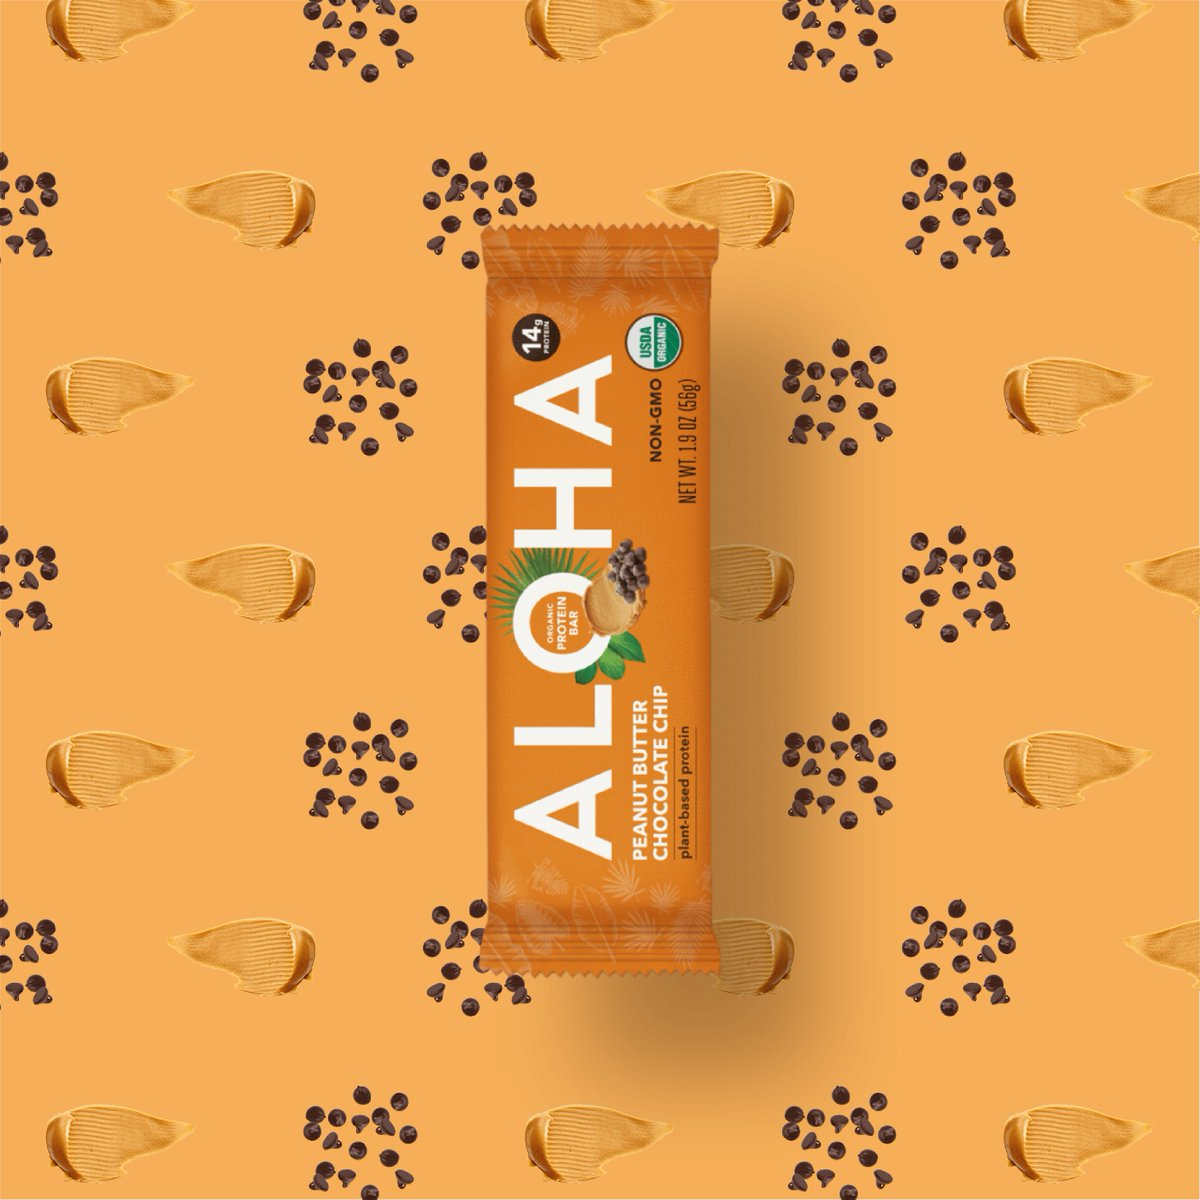 We combined peanuts and chocolate, for when you're craving something salty... and sweet. #AlohaMoment https://t.co/jiA7ahJden